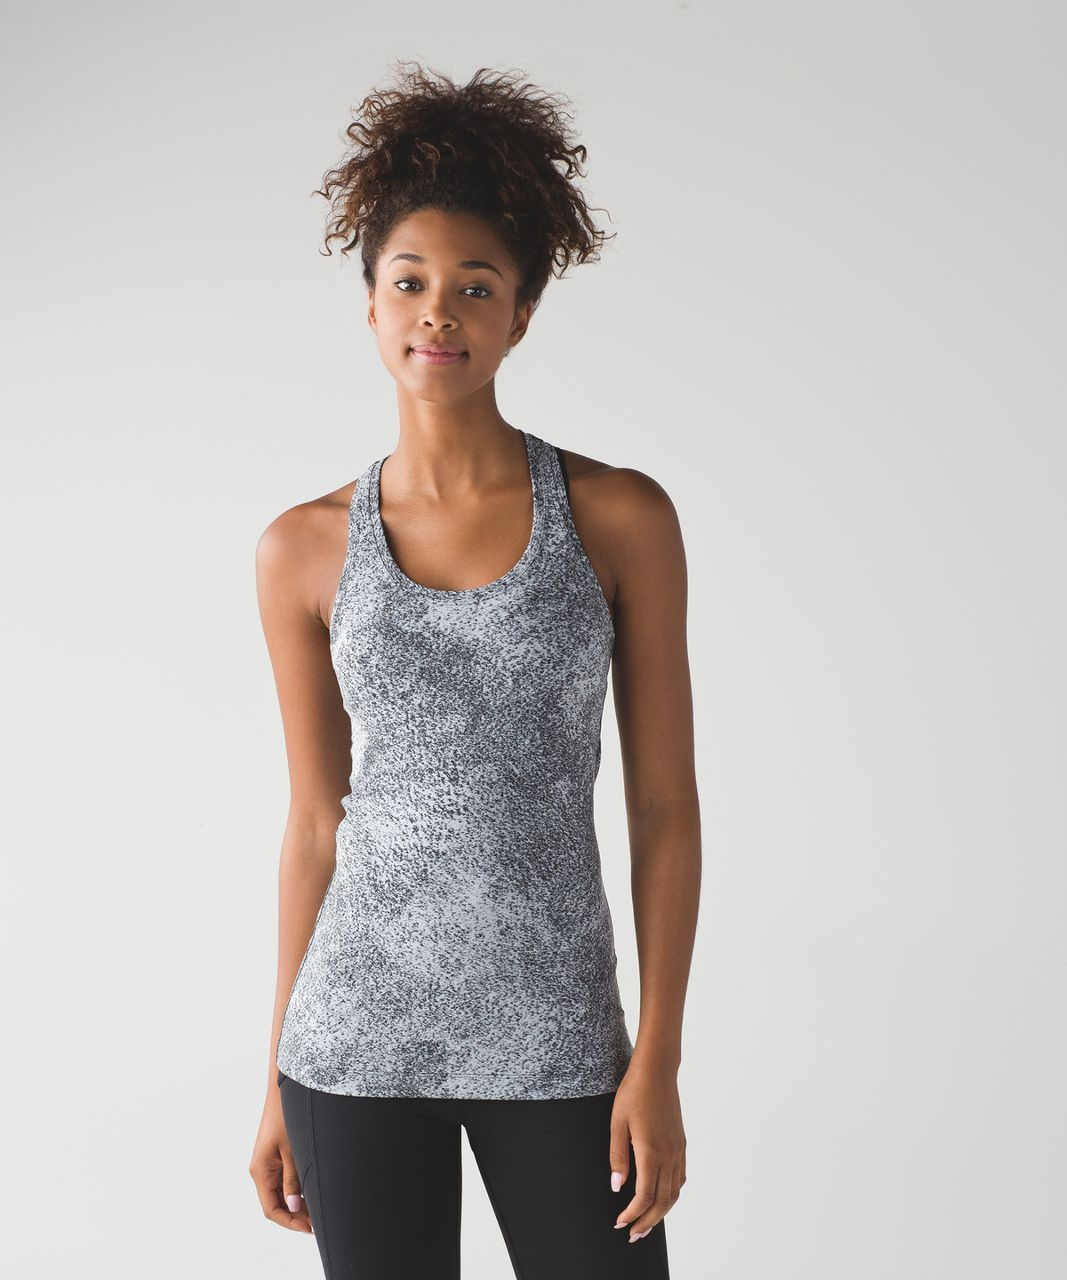 Lululemon Cool Racerback II - Luon Spray Jacquard White Black